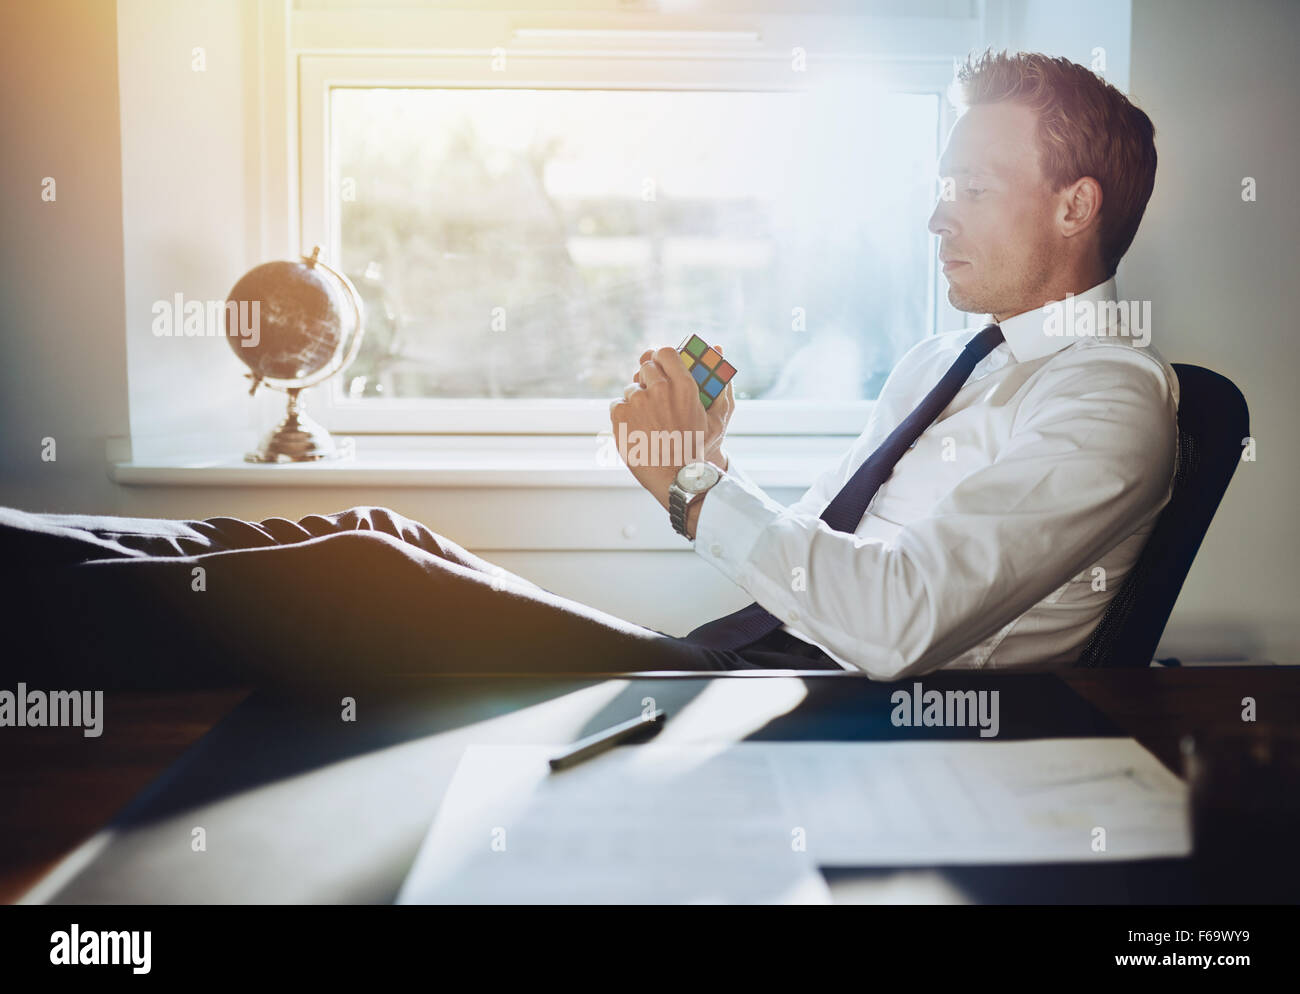 Executive business man solving problems and getting ideas for new business concepts - Stock Image